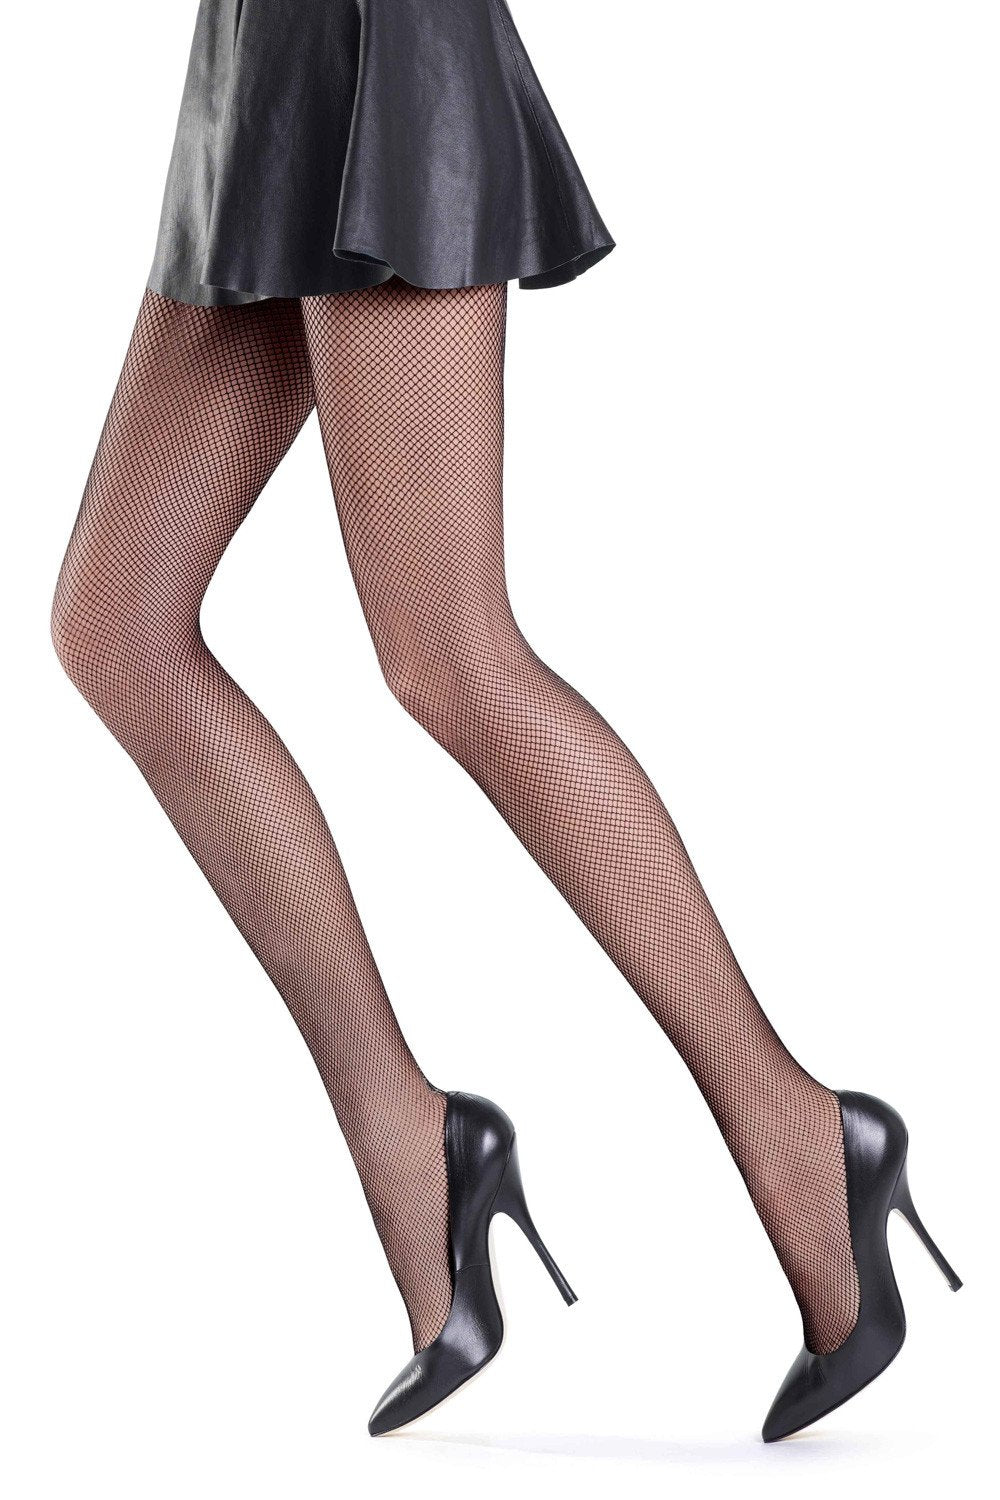 Oroblu Tricot Fishnet Tights - The Hosiery Box